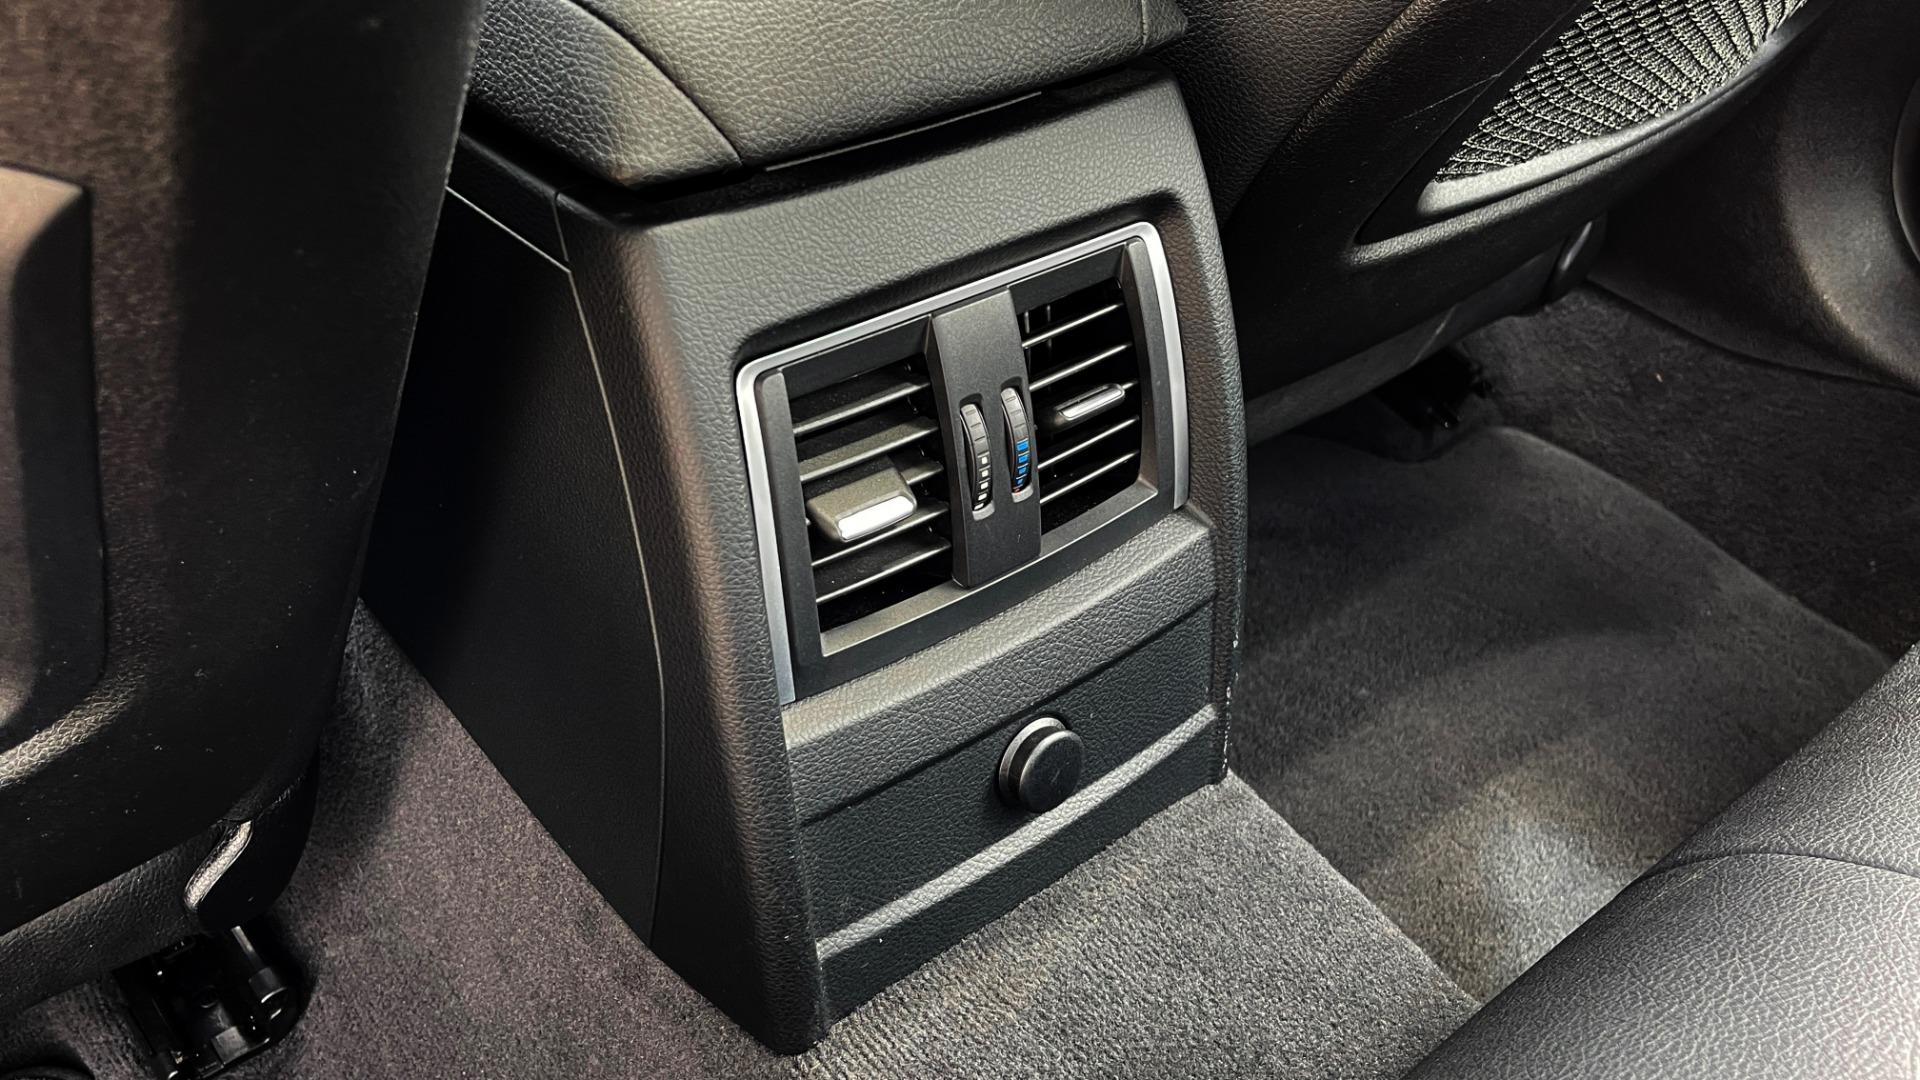 Used 2018 BMW 3 SERIES 330IXDRIVE / NAV / CONV PKG / ABSD / SUNROOF / REARVIEW for sale $29,599 at Formula Imports in Charlotte NC 28227 52